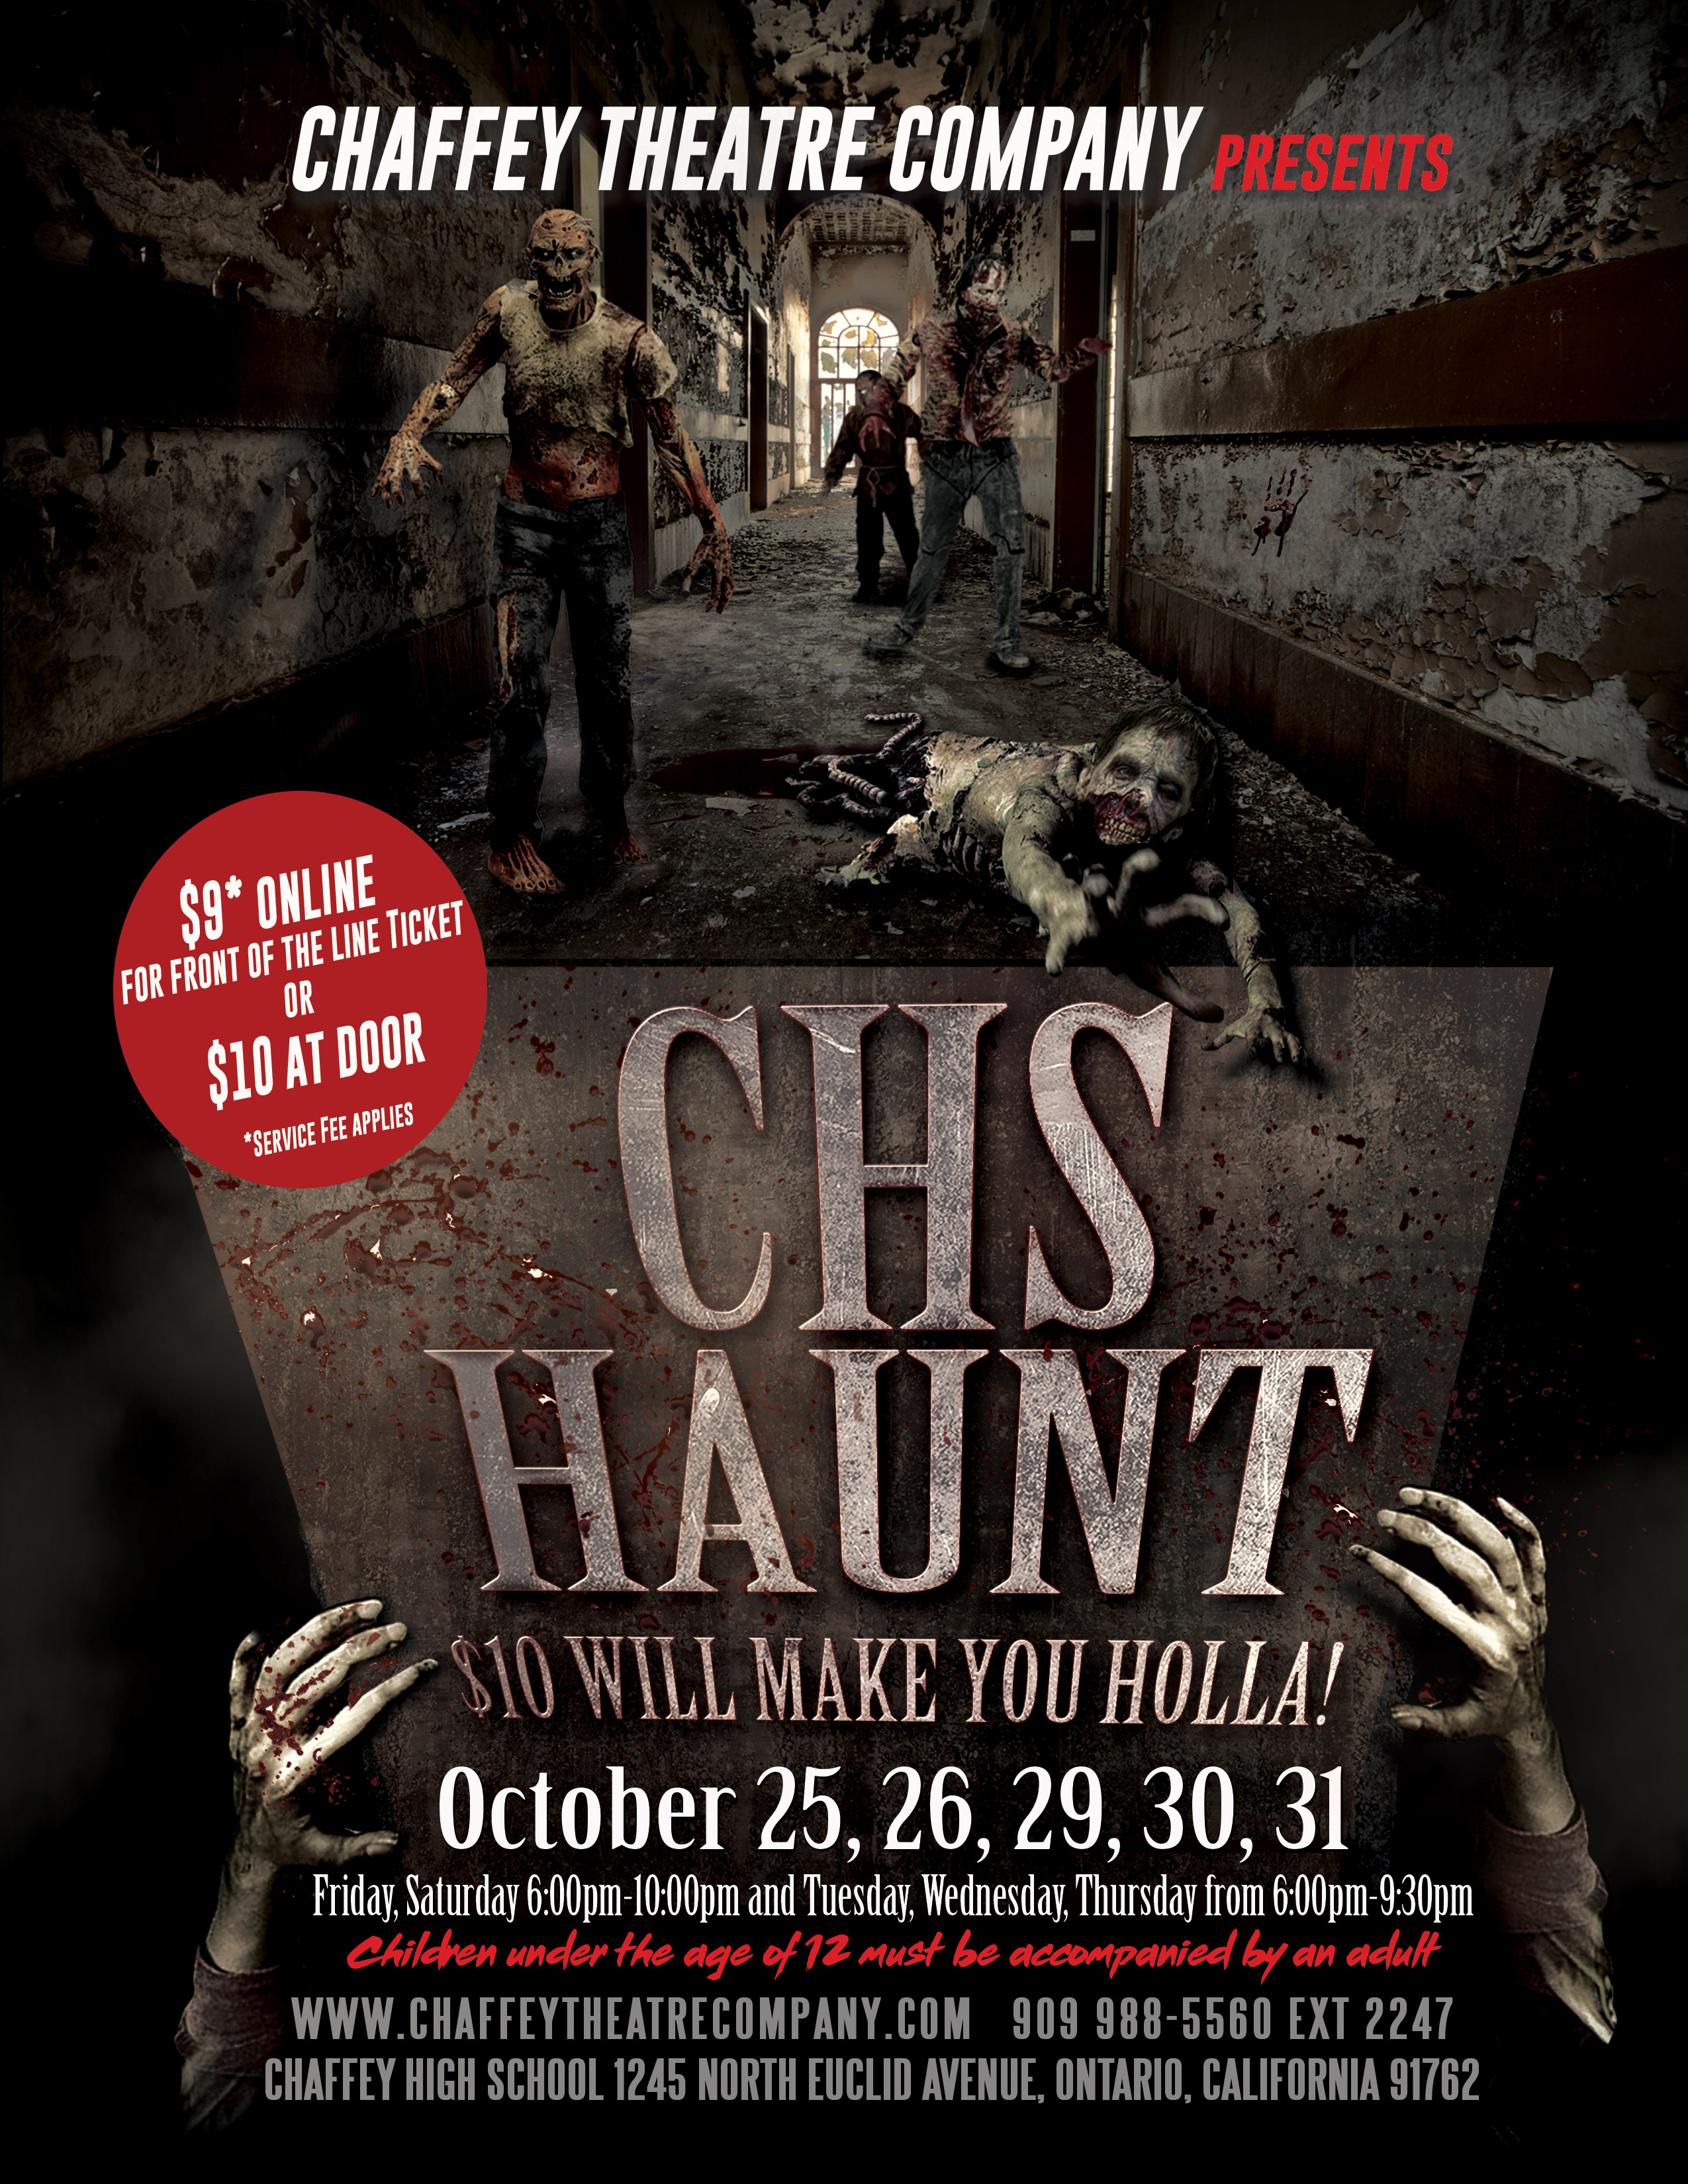 CHS Haunt - Ontario Arts & Culture